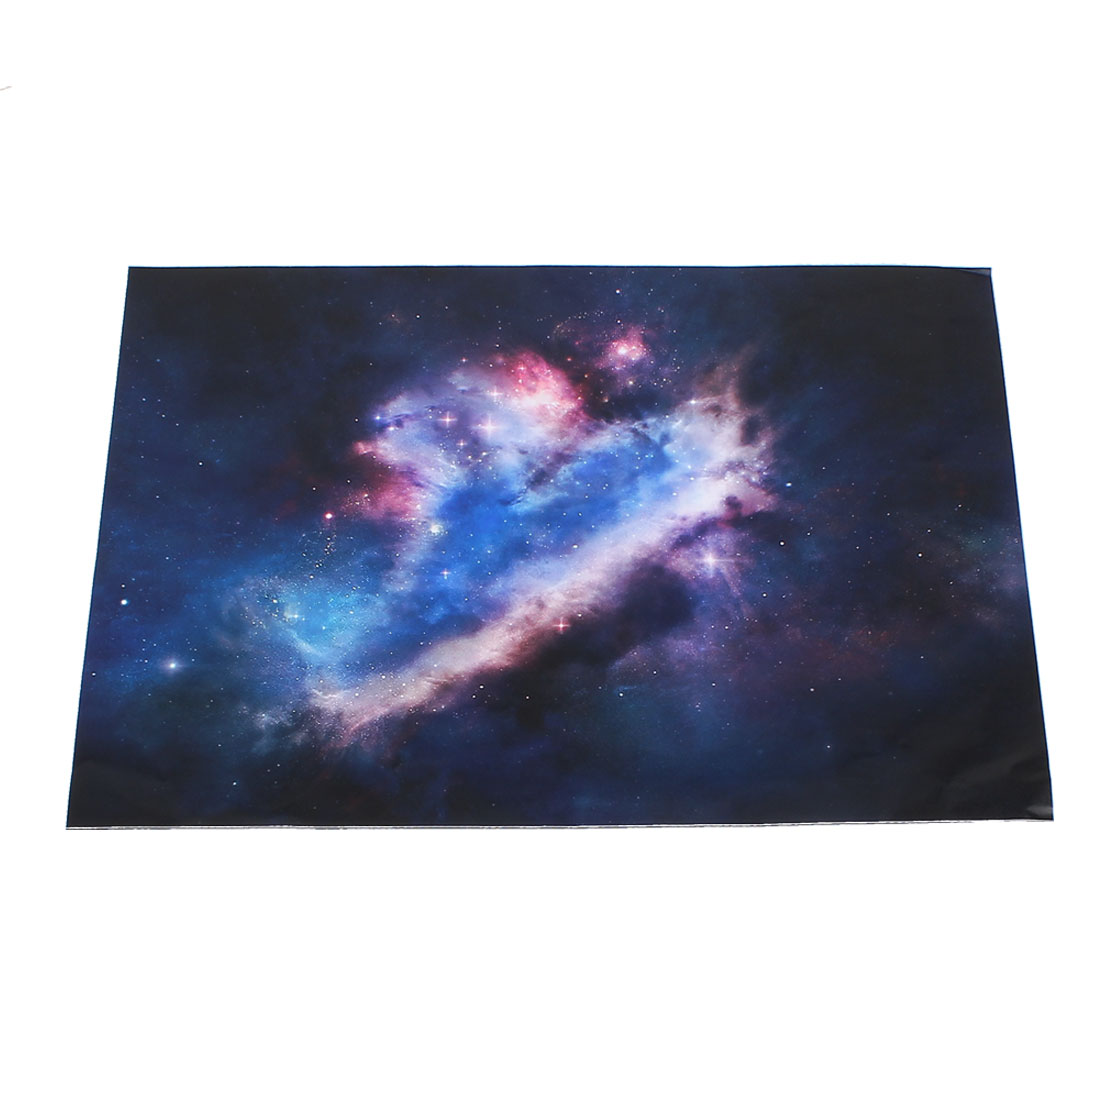 "Pink Blue Nebula Printed Self-adhesive Decal Sticker Decor for 15"" 15.4"" 15.6"" Laptop Notebook"